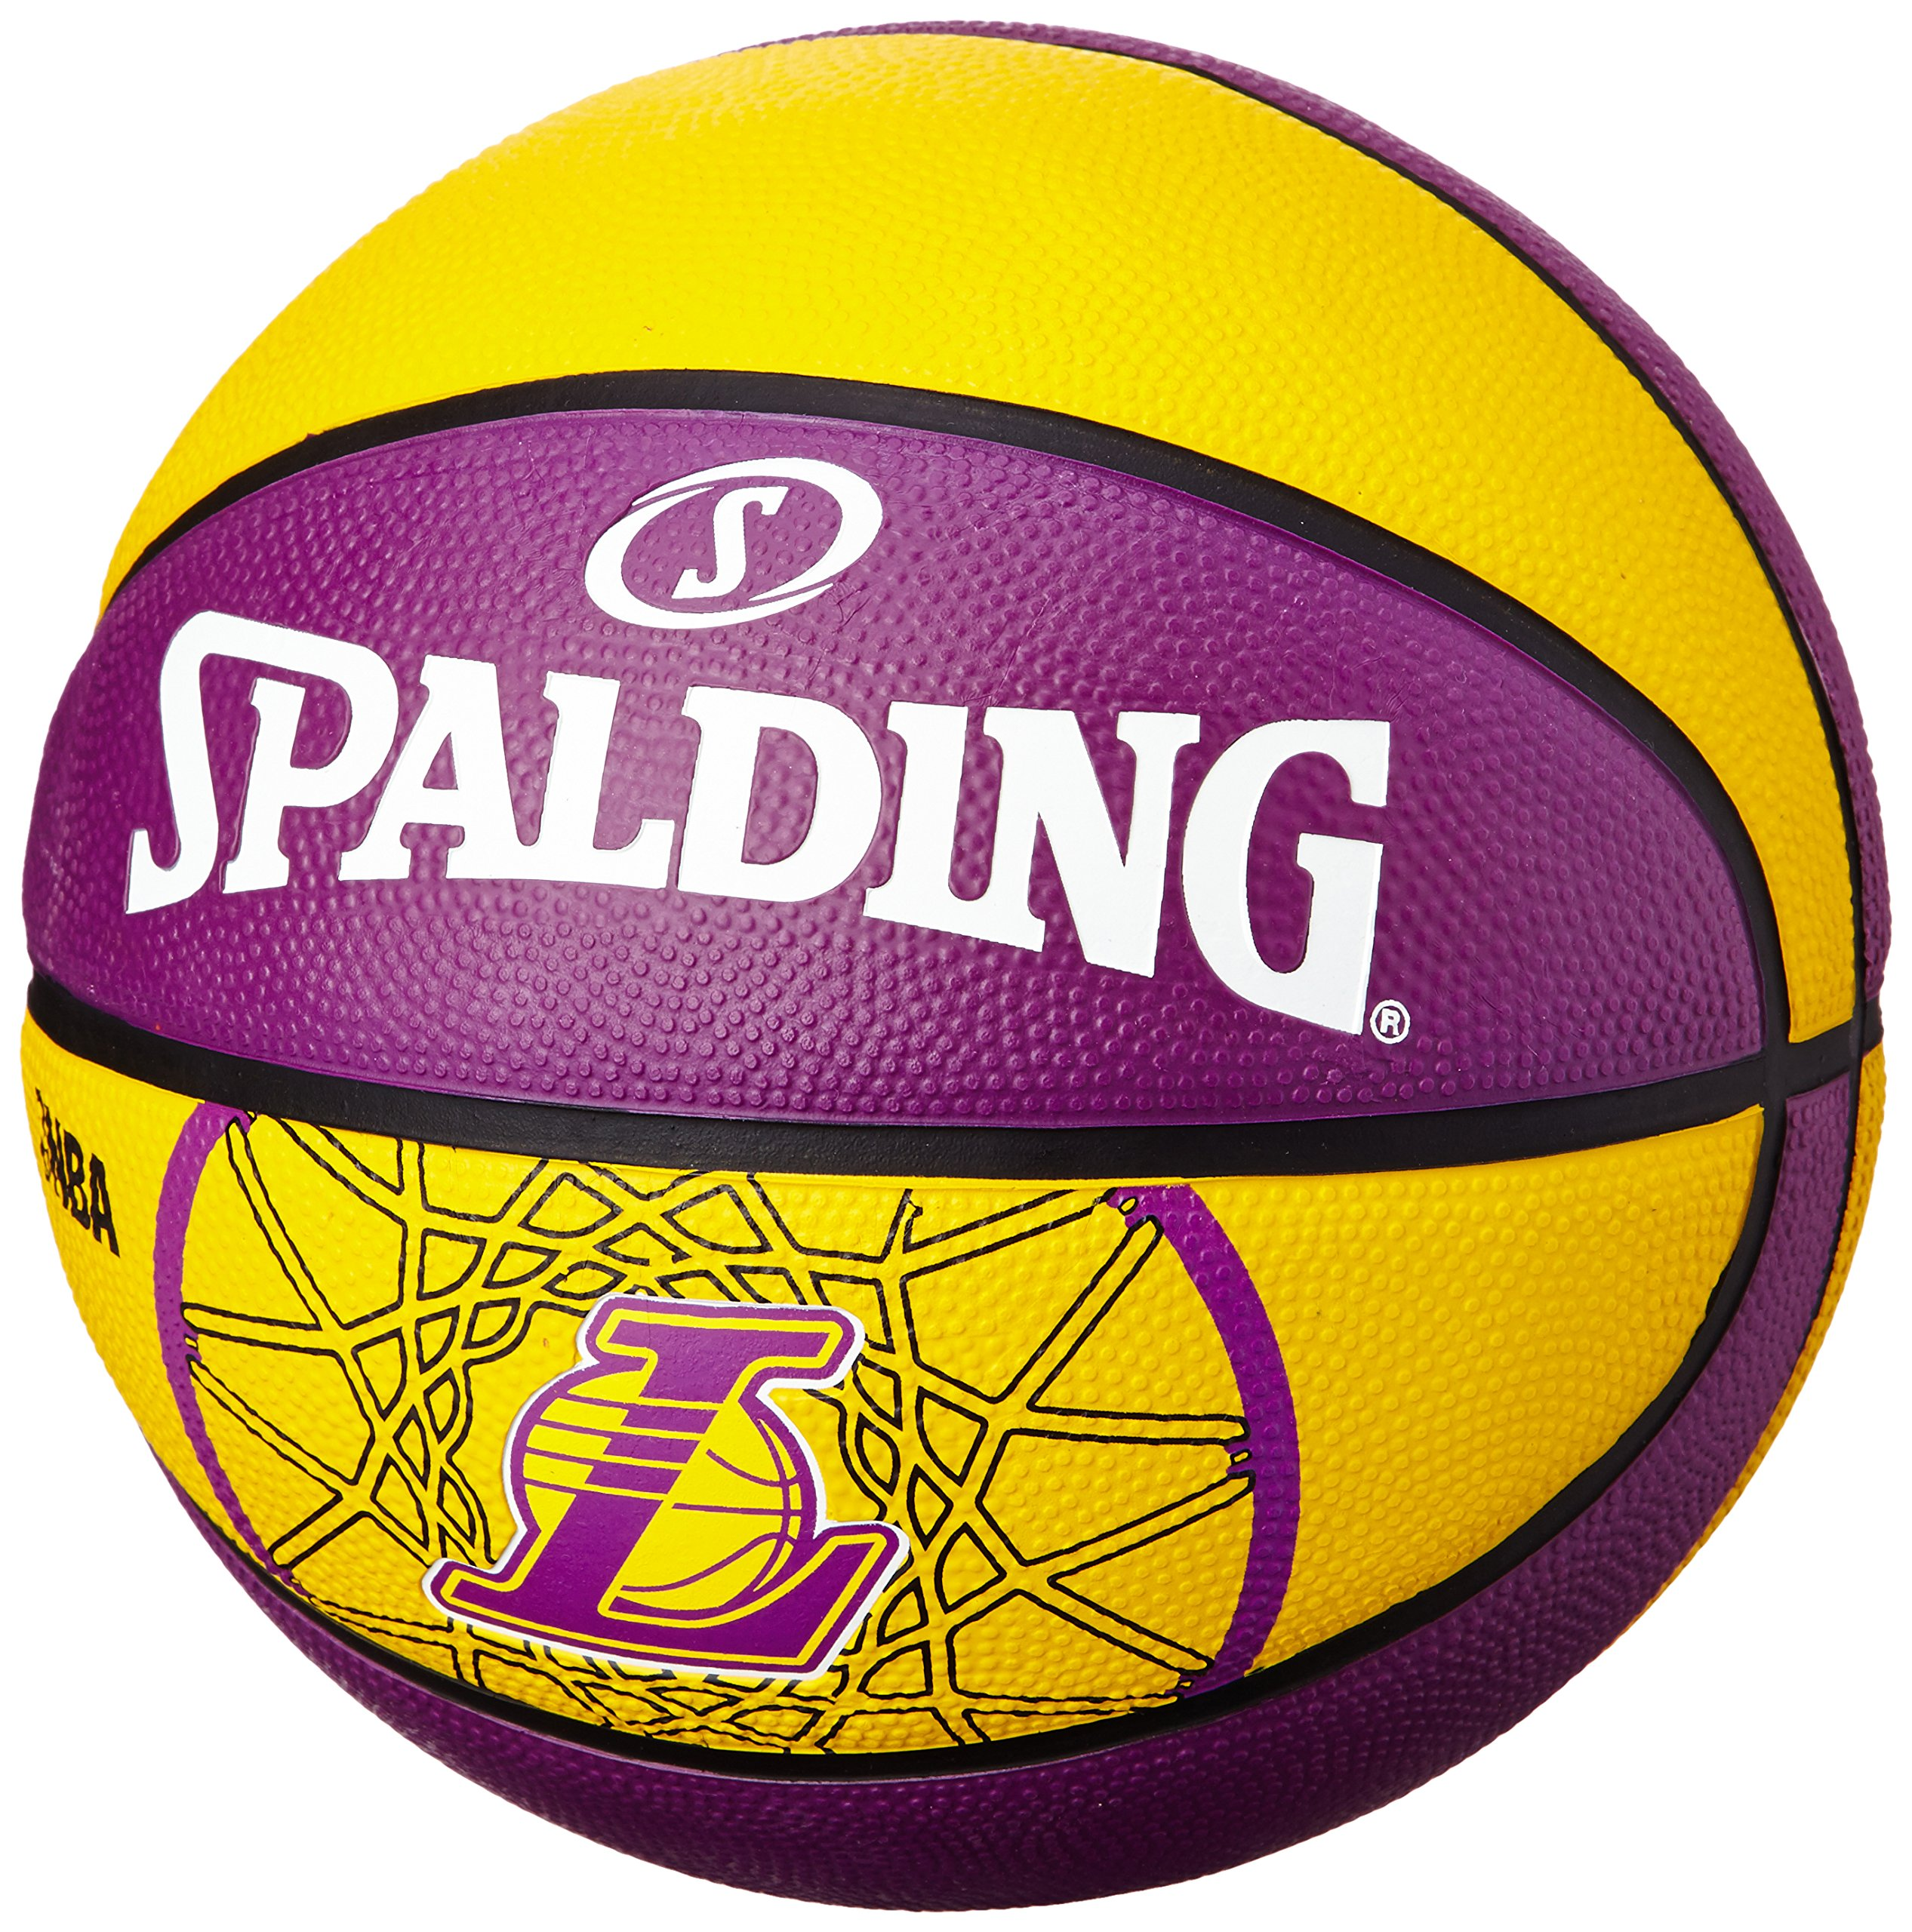 Spalding L.A.Lakers - Pelota de Baloncesto, Talla 7: Amazon.es ...